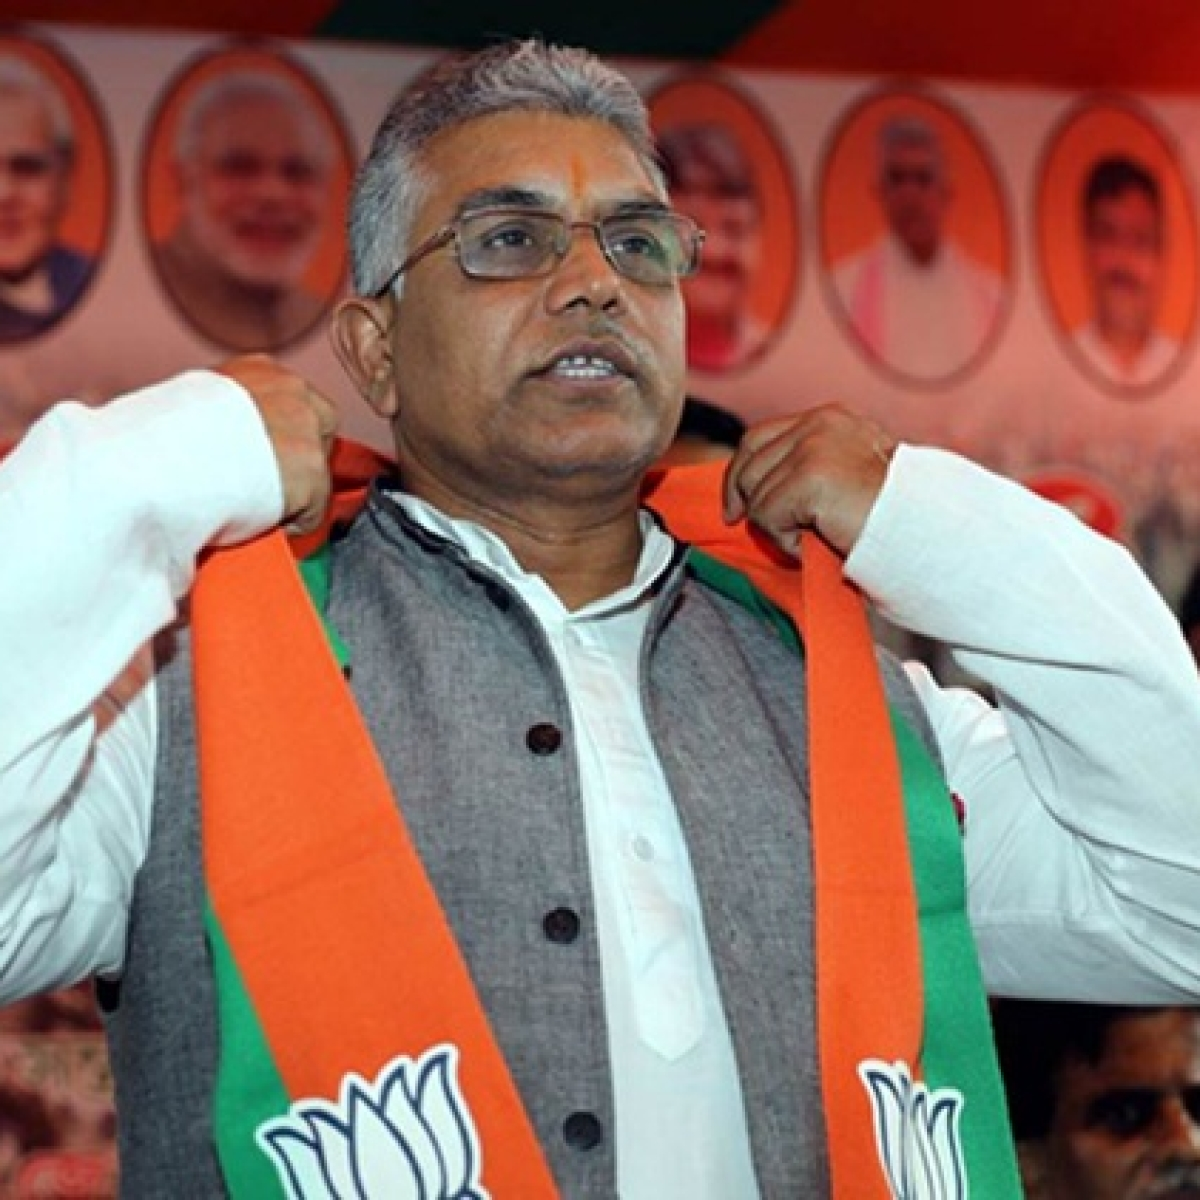 Days after 'shot like dogs' remark, Dilip Ghosh re-elected as West Bengal BJP chief